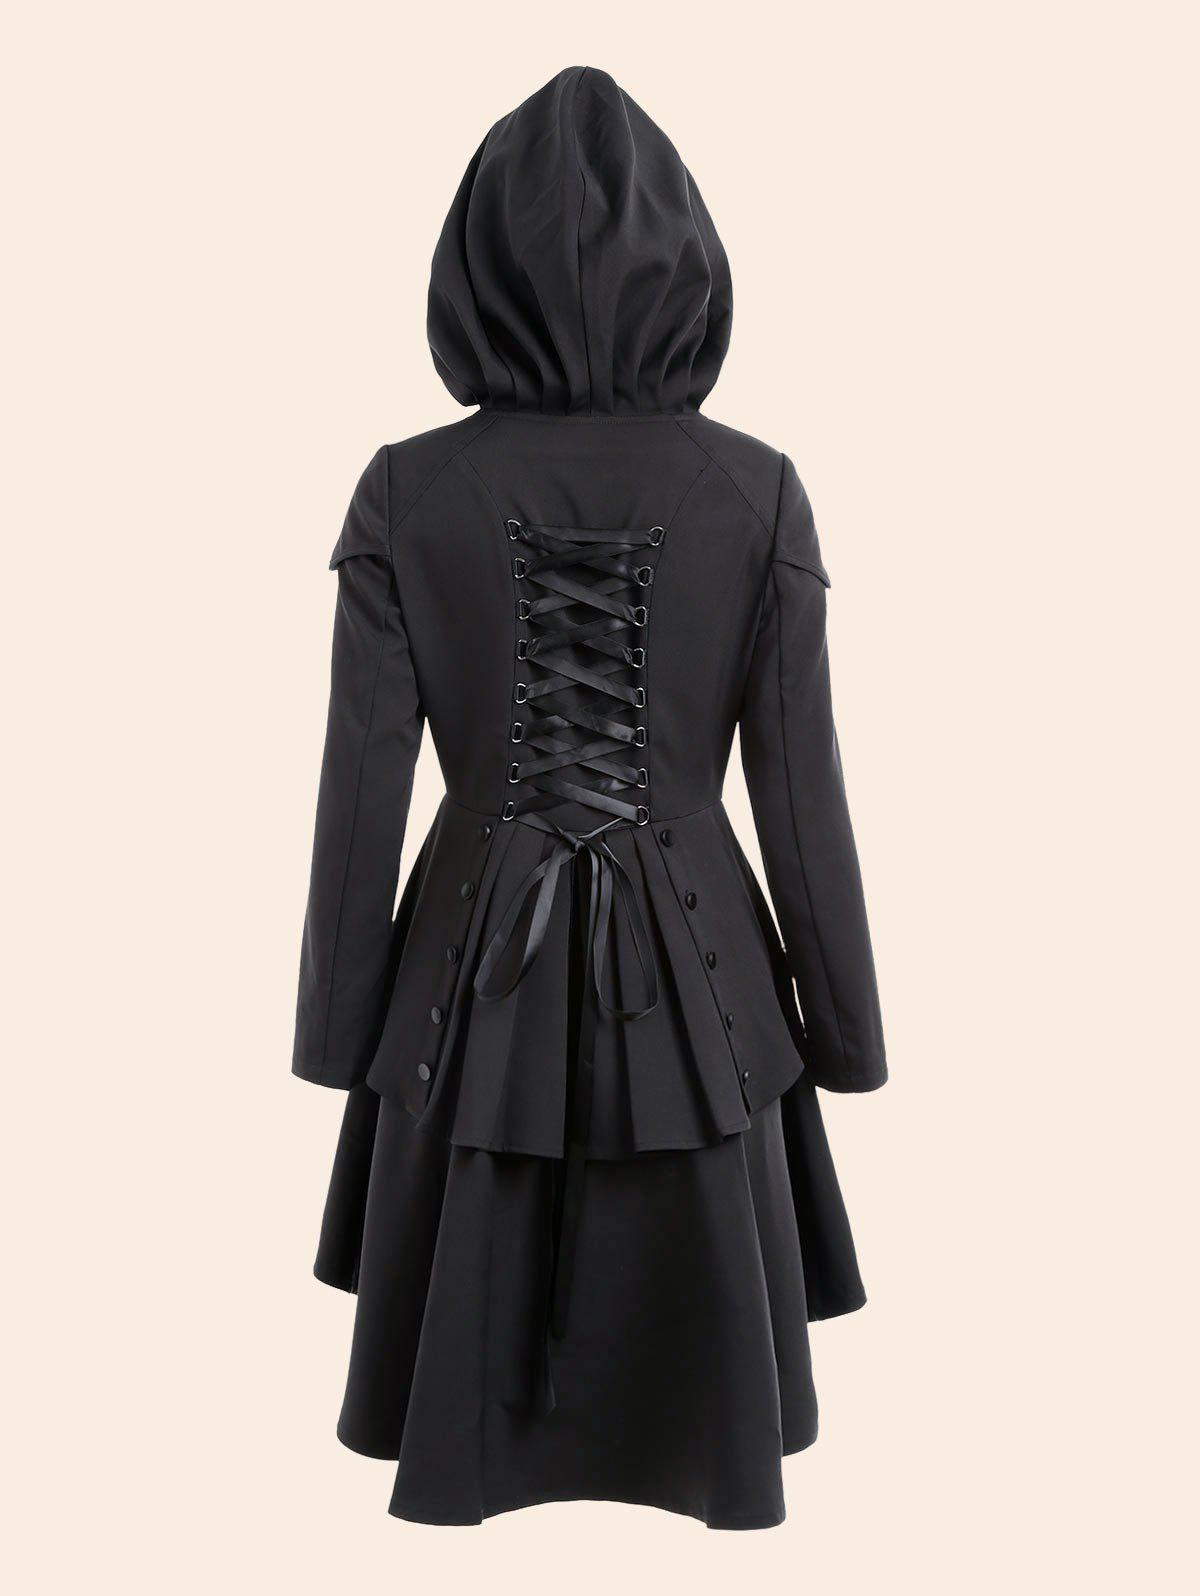 Lace Up High Low Plus Size Hooded CoatWOMEN<br><br>Size: 3XL; Color: BLACK; Clothes Type: Others; Material: Polyester; Type: High Waist; Shirt Length: Regular; Sleeve Length: Full; Collar: Hooded; Closure Type: Single Breasted; Pattern Type: Solid; Embellishment: Criss-Cross; Style: Gothic; Season: Fall,Spring; With Belt: No; Weight: 0.7500kg; Package Contents: 1 x Coat;